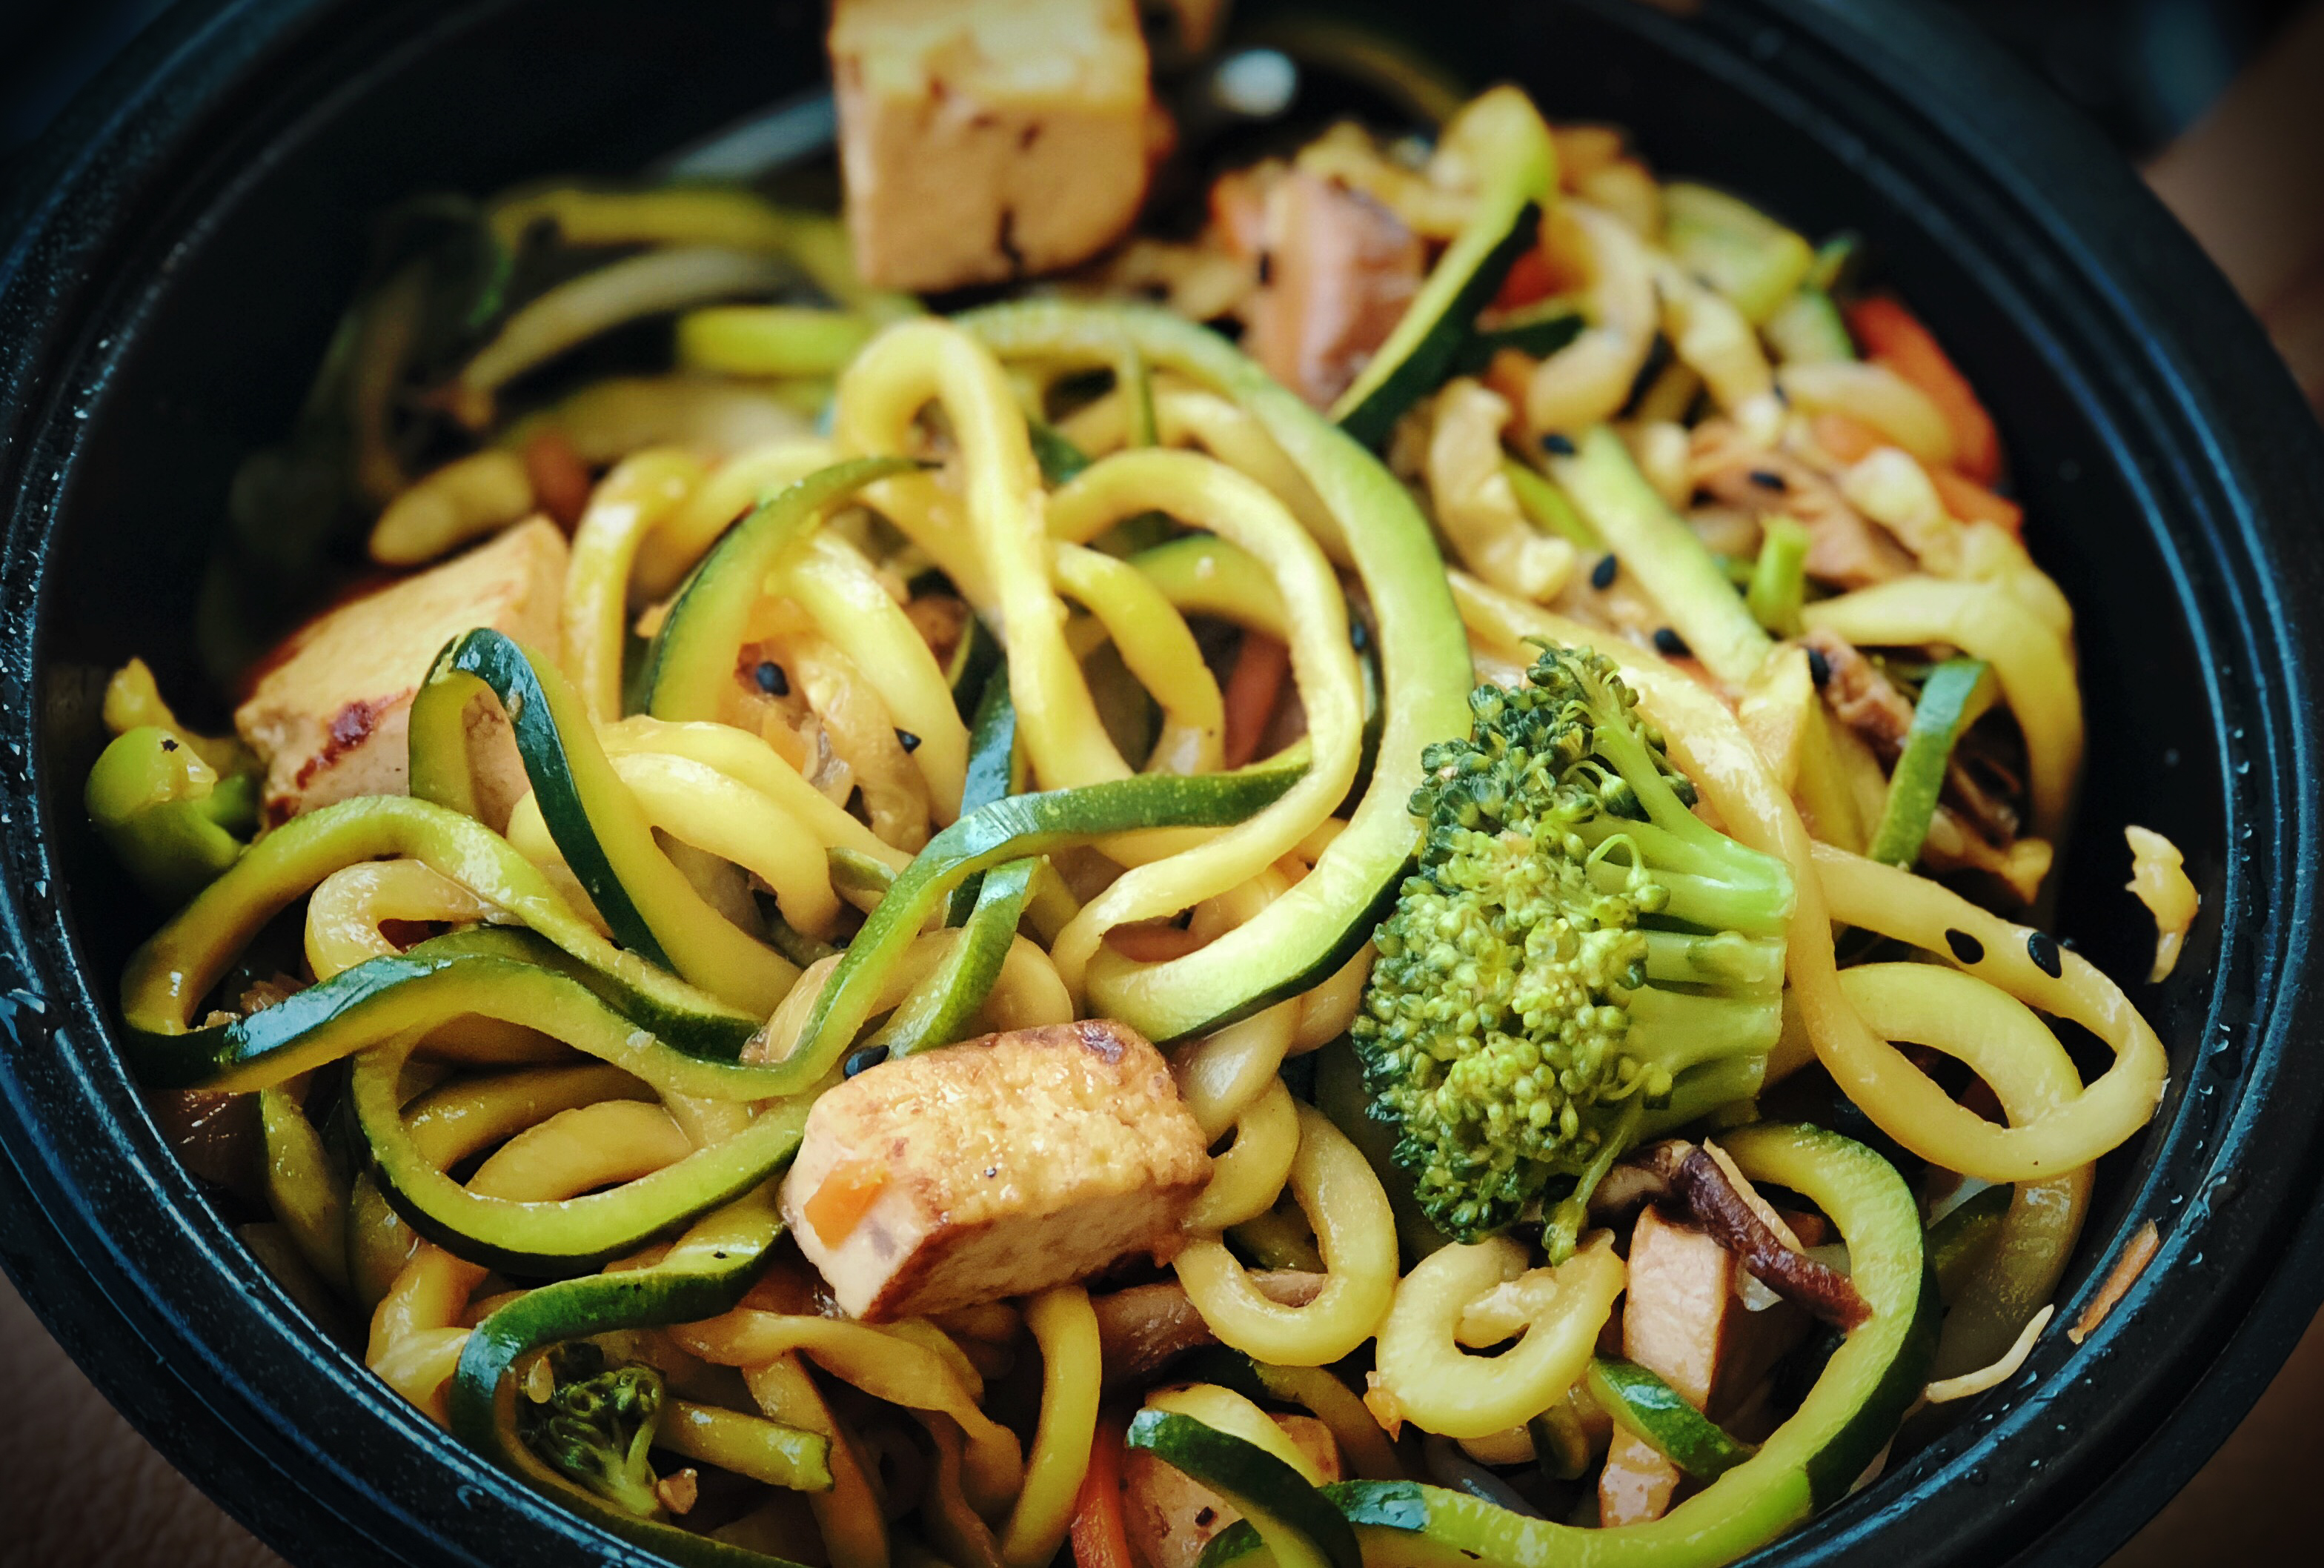 File:Zoodles - Zucchini Spirals at Noodles and Company (41891311712).jpg - Wikimedia Commons